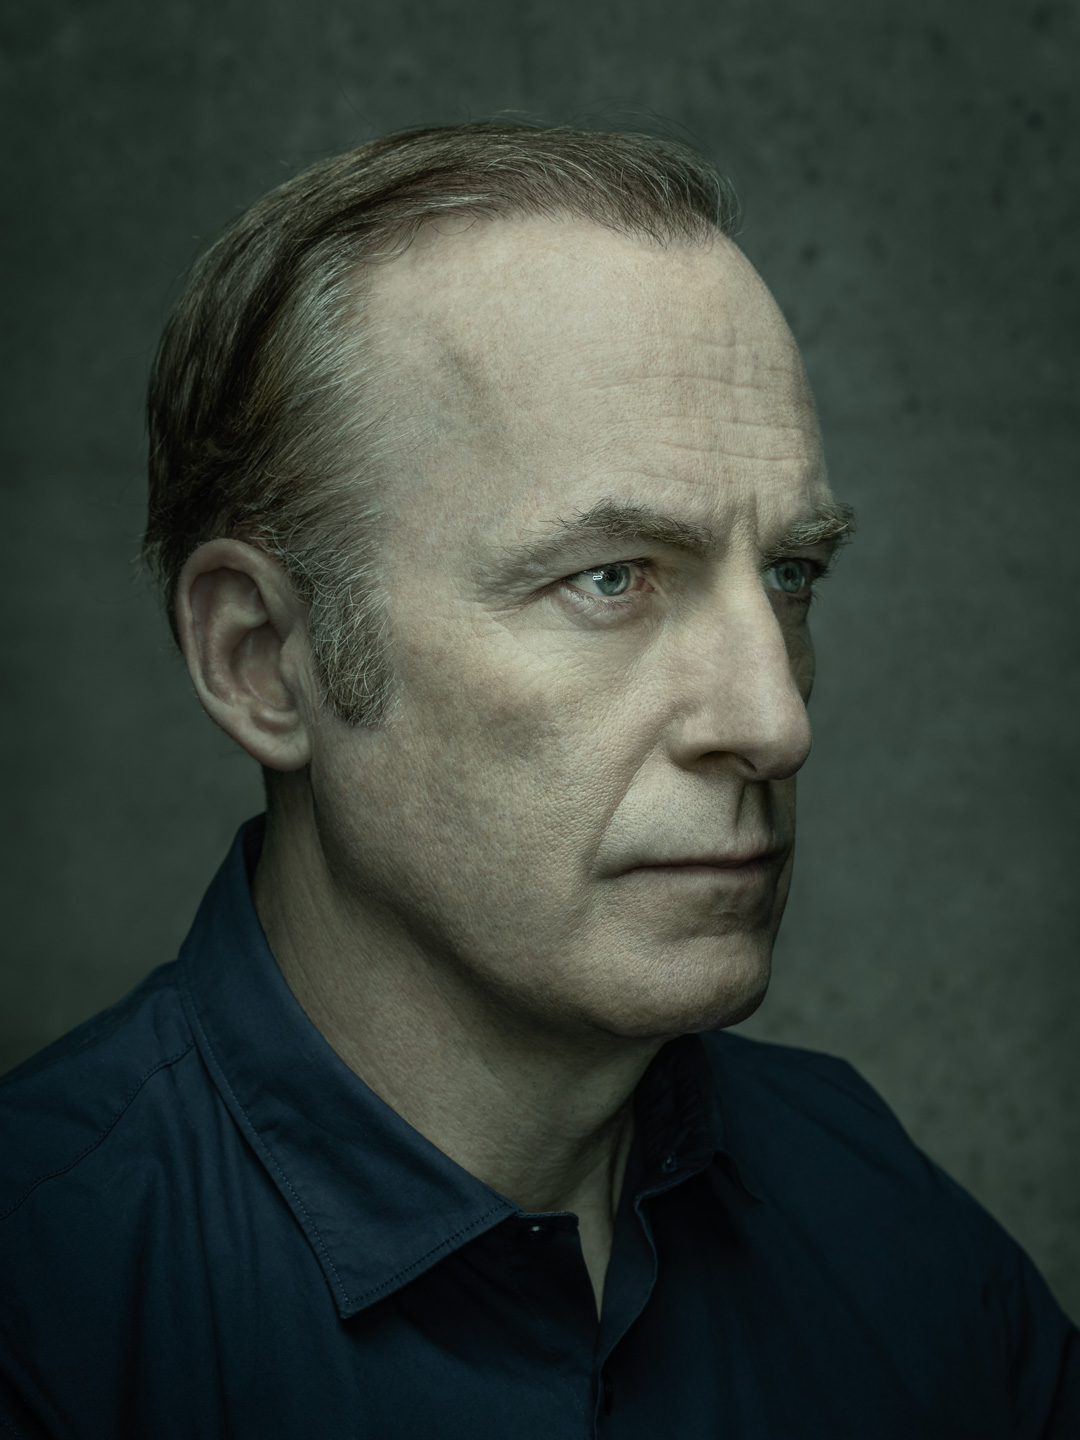 Winters_EW_Breaking_Bad_Bob_Odenkirk_0517_v2